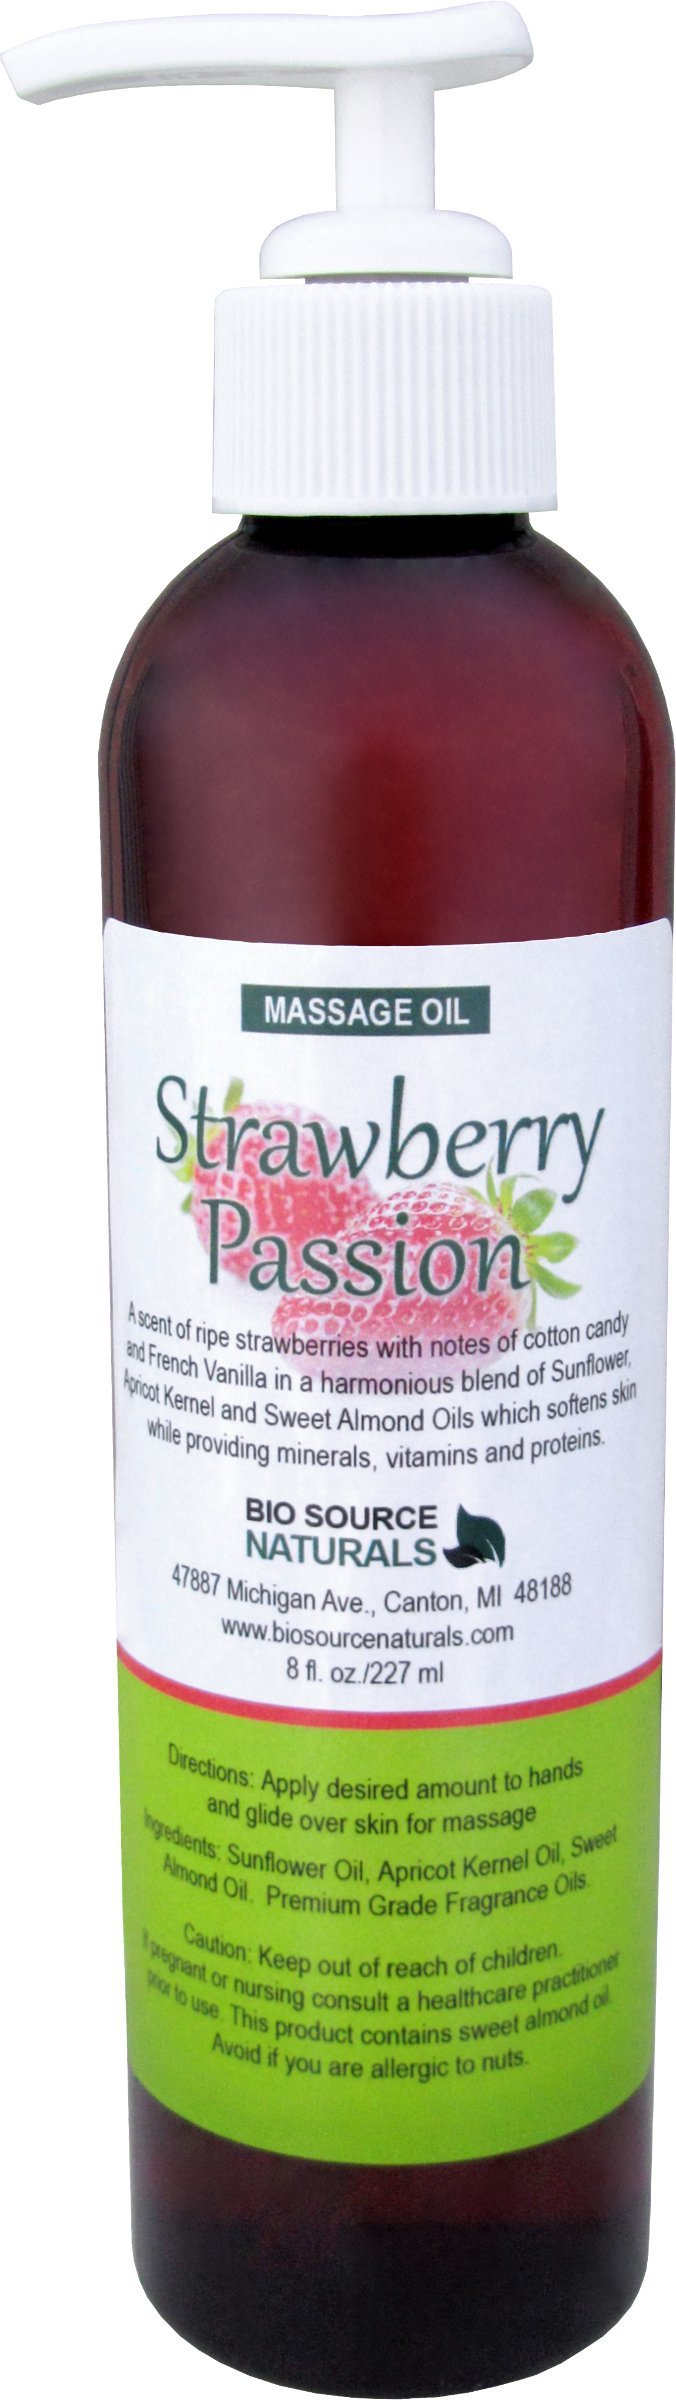 Strawberry Passion Body Oil / Massage Oil 8 fl. oz. with All Natural Plant Oils